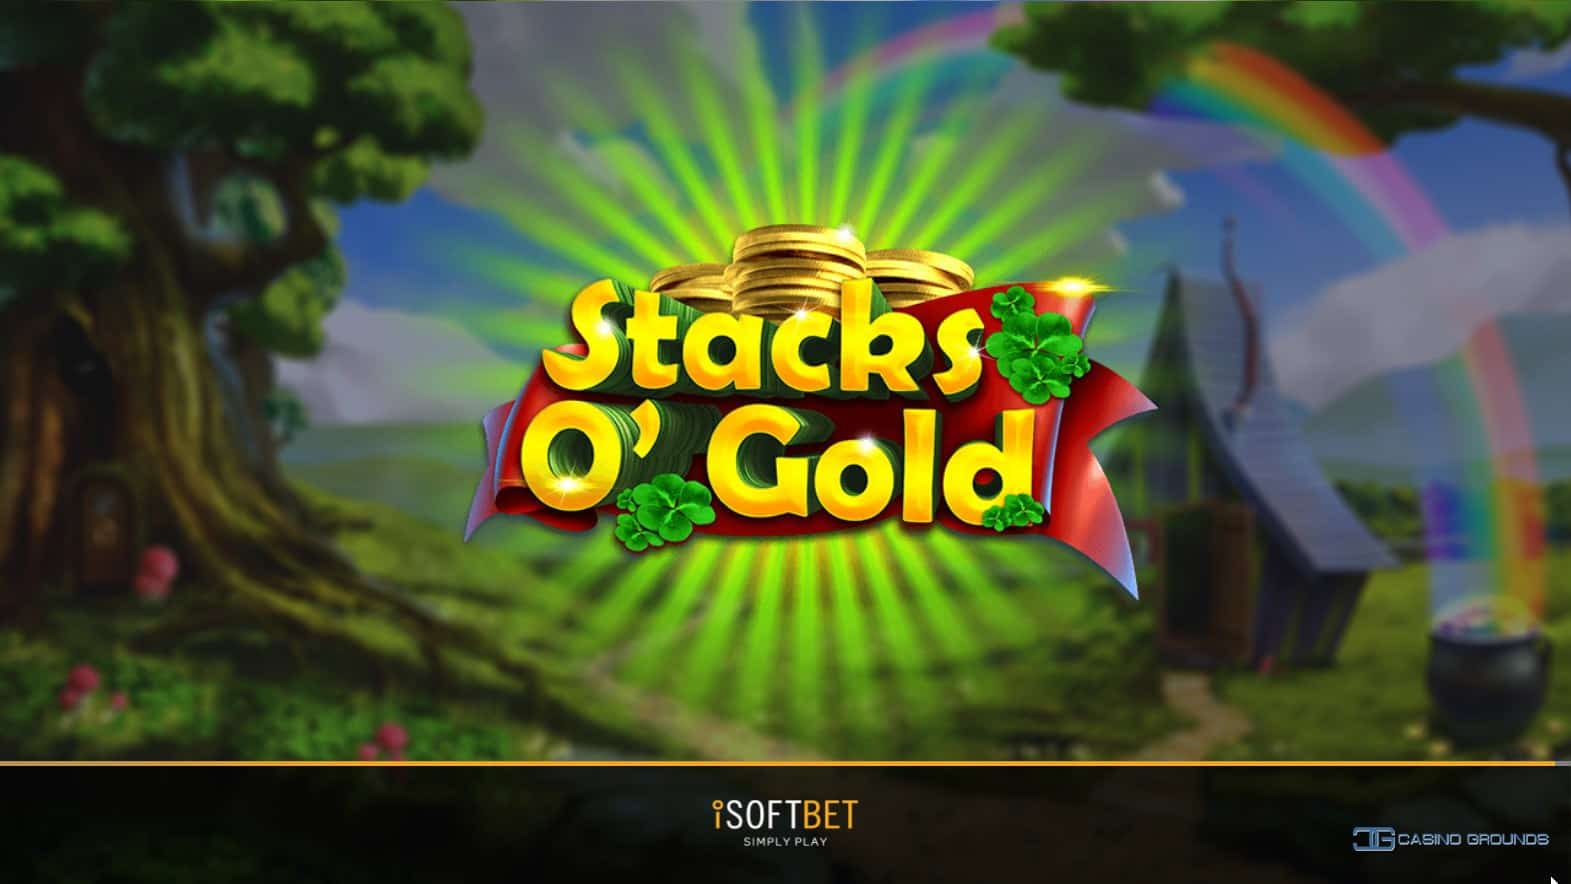 stacks o' gold slots game logo